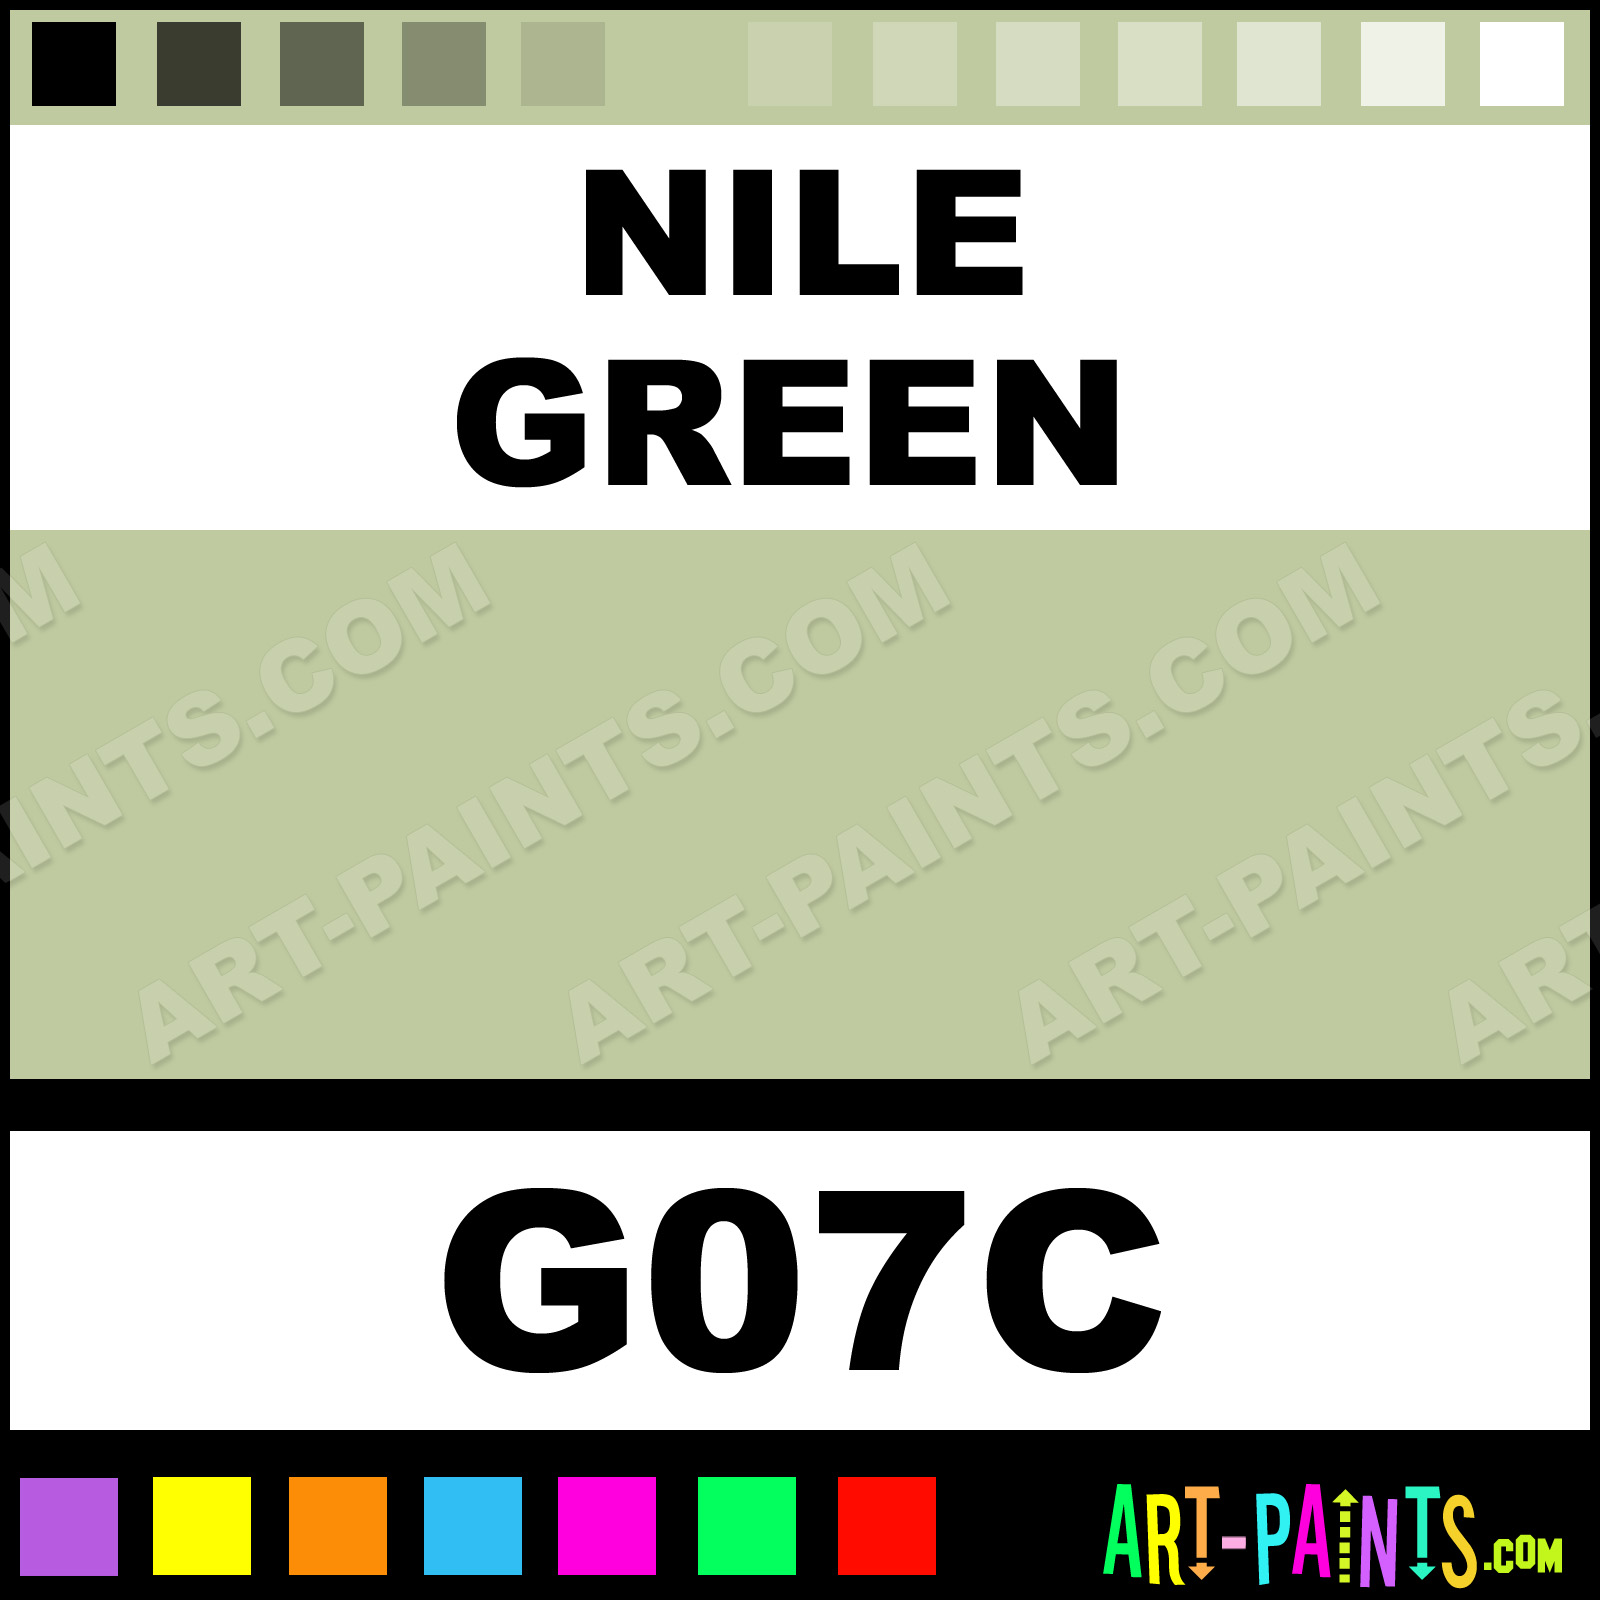 Nile Green Original Paintmarker Marking Pen Paints G07c Nile Green Paint Nile Green Color